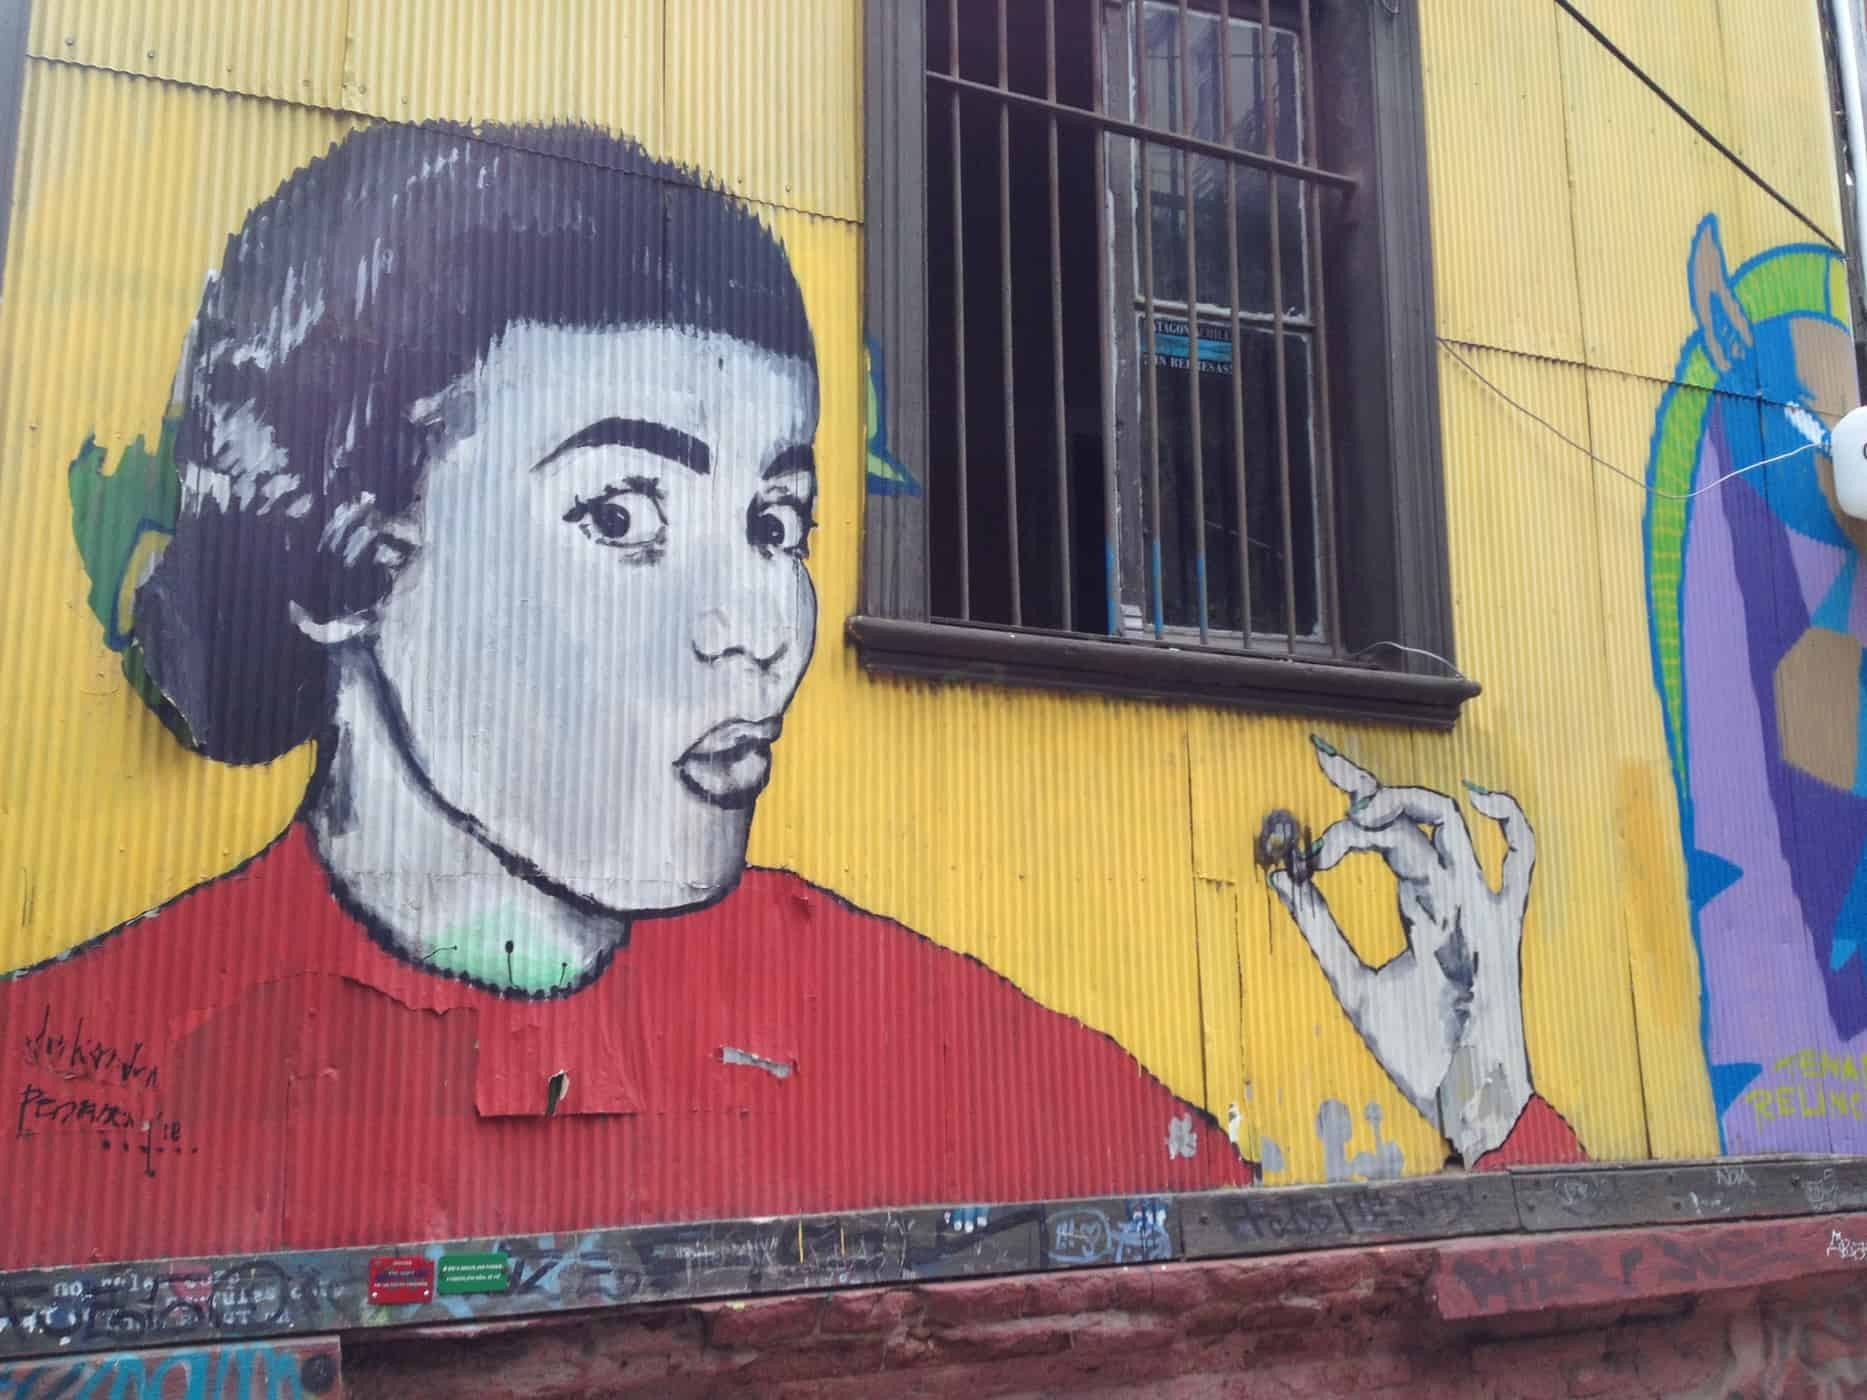 Graffiti in Valparaíso, Chile - A city popular with artists and musicians